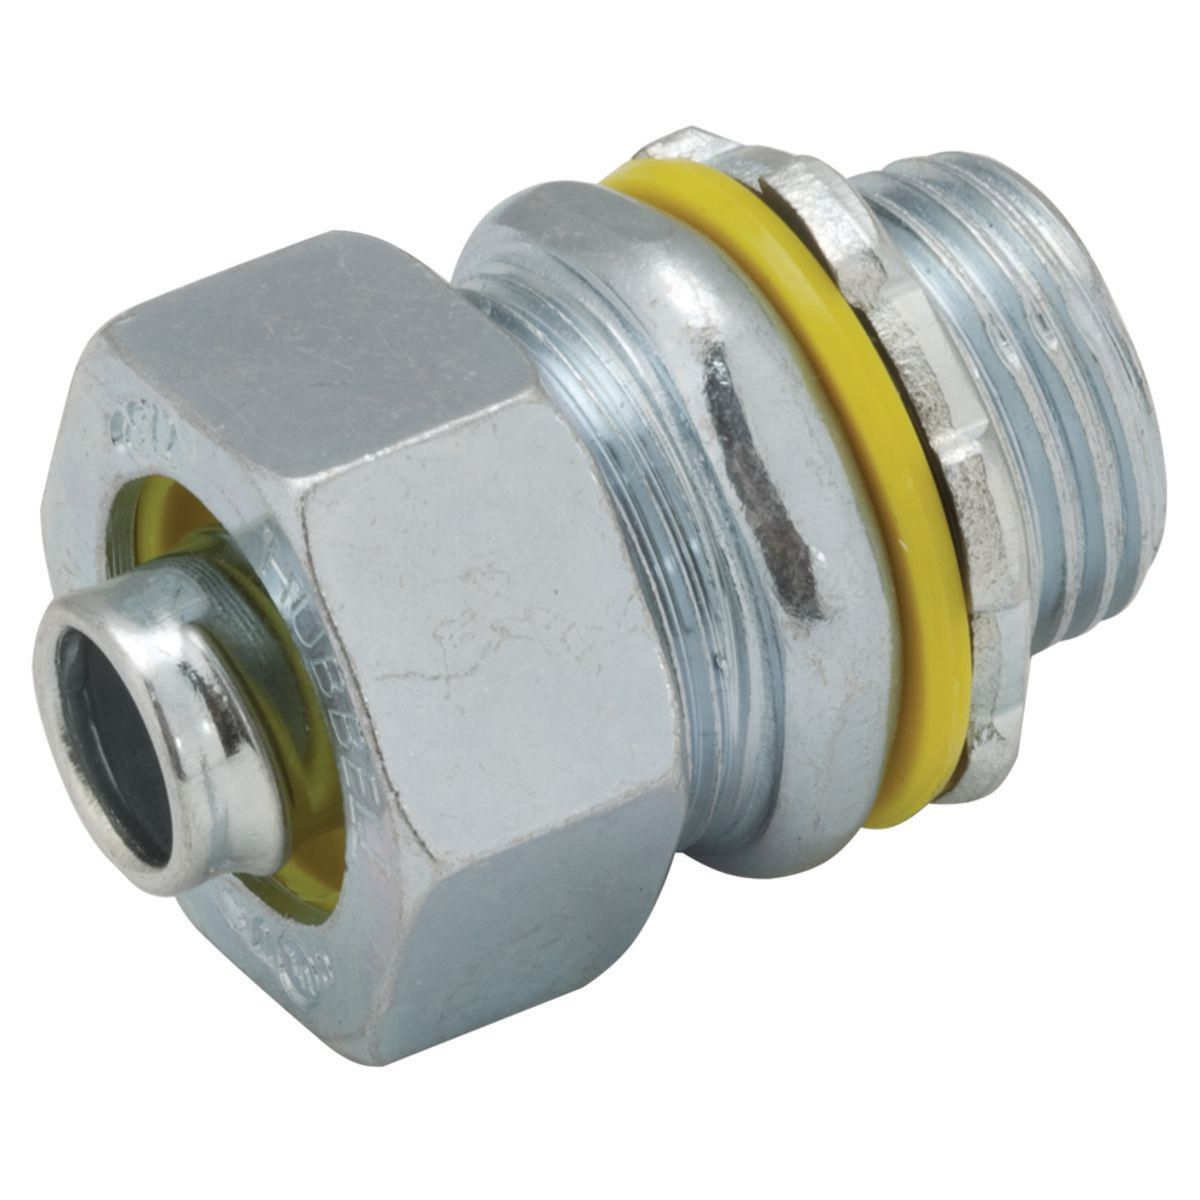 LIQUIDTIGHT CONCTR 3/8IN STEEL, BARCODED